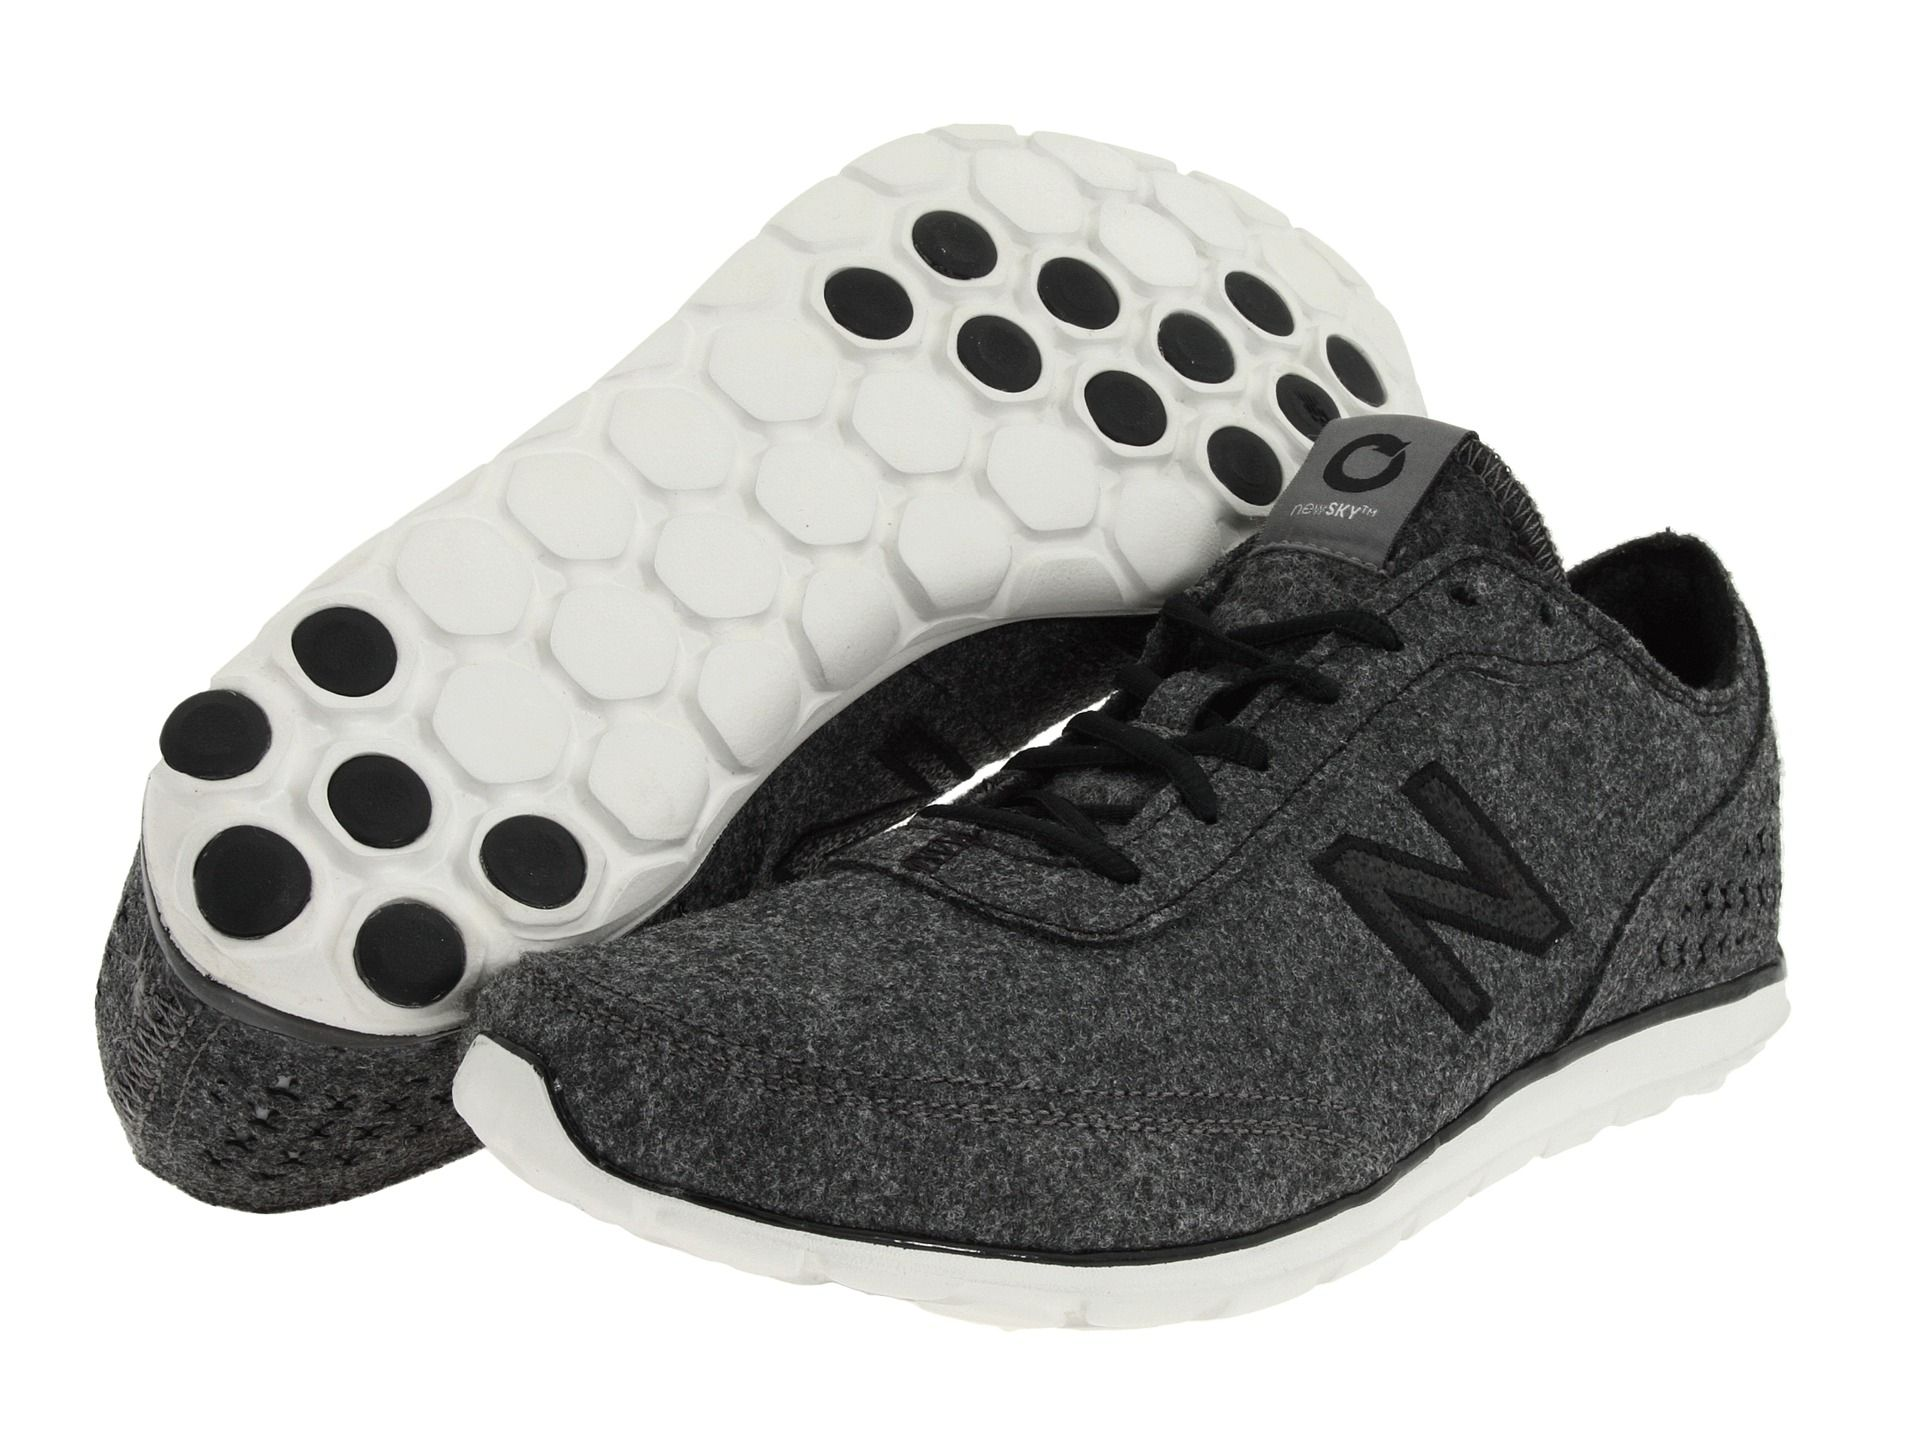 New balance recycled shoes - New Balance Minimalist Tennis Shoes From Recycled Water Bottles